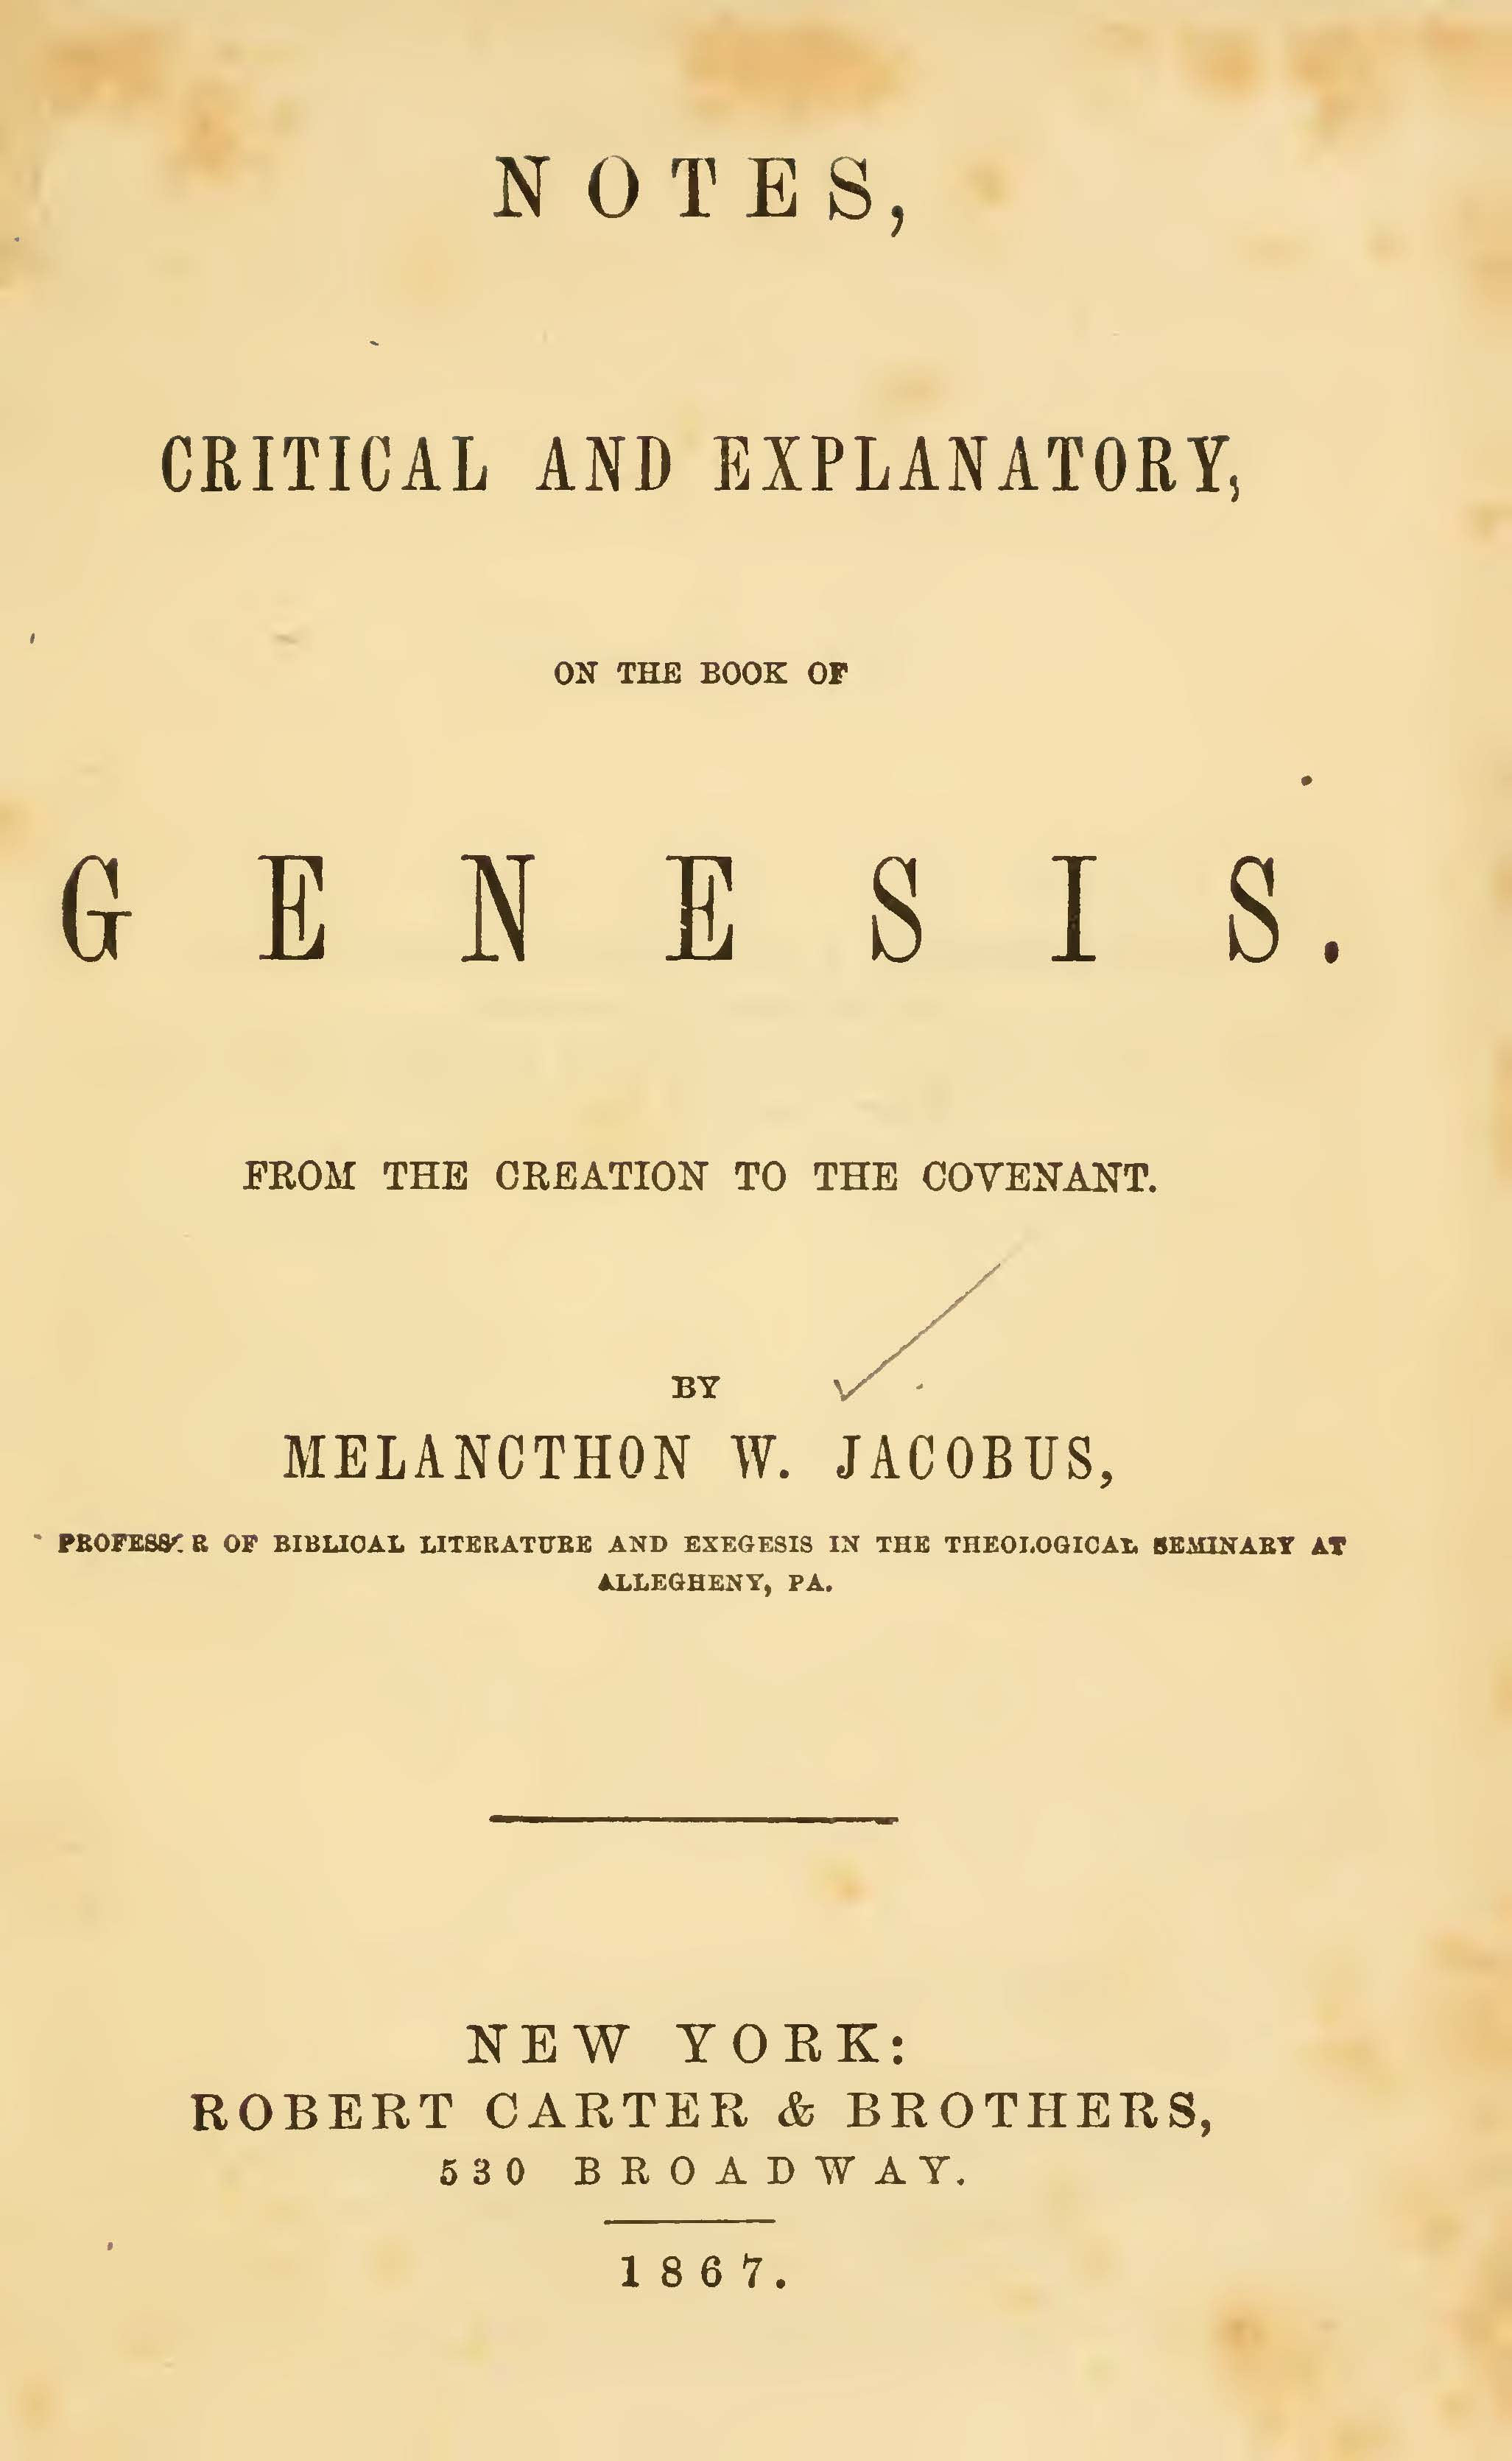 Jacobus, Sr., Melancthon Williams, Notes on Genesis, Vol. 1 Title Page.jpg